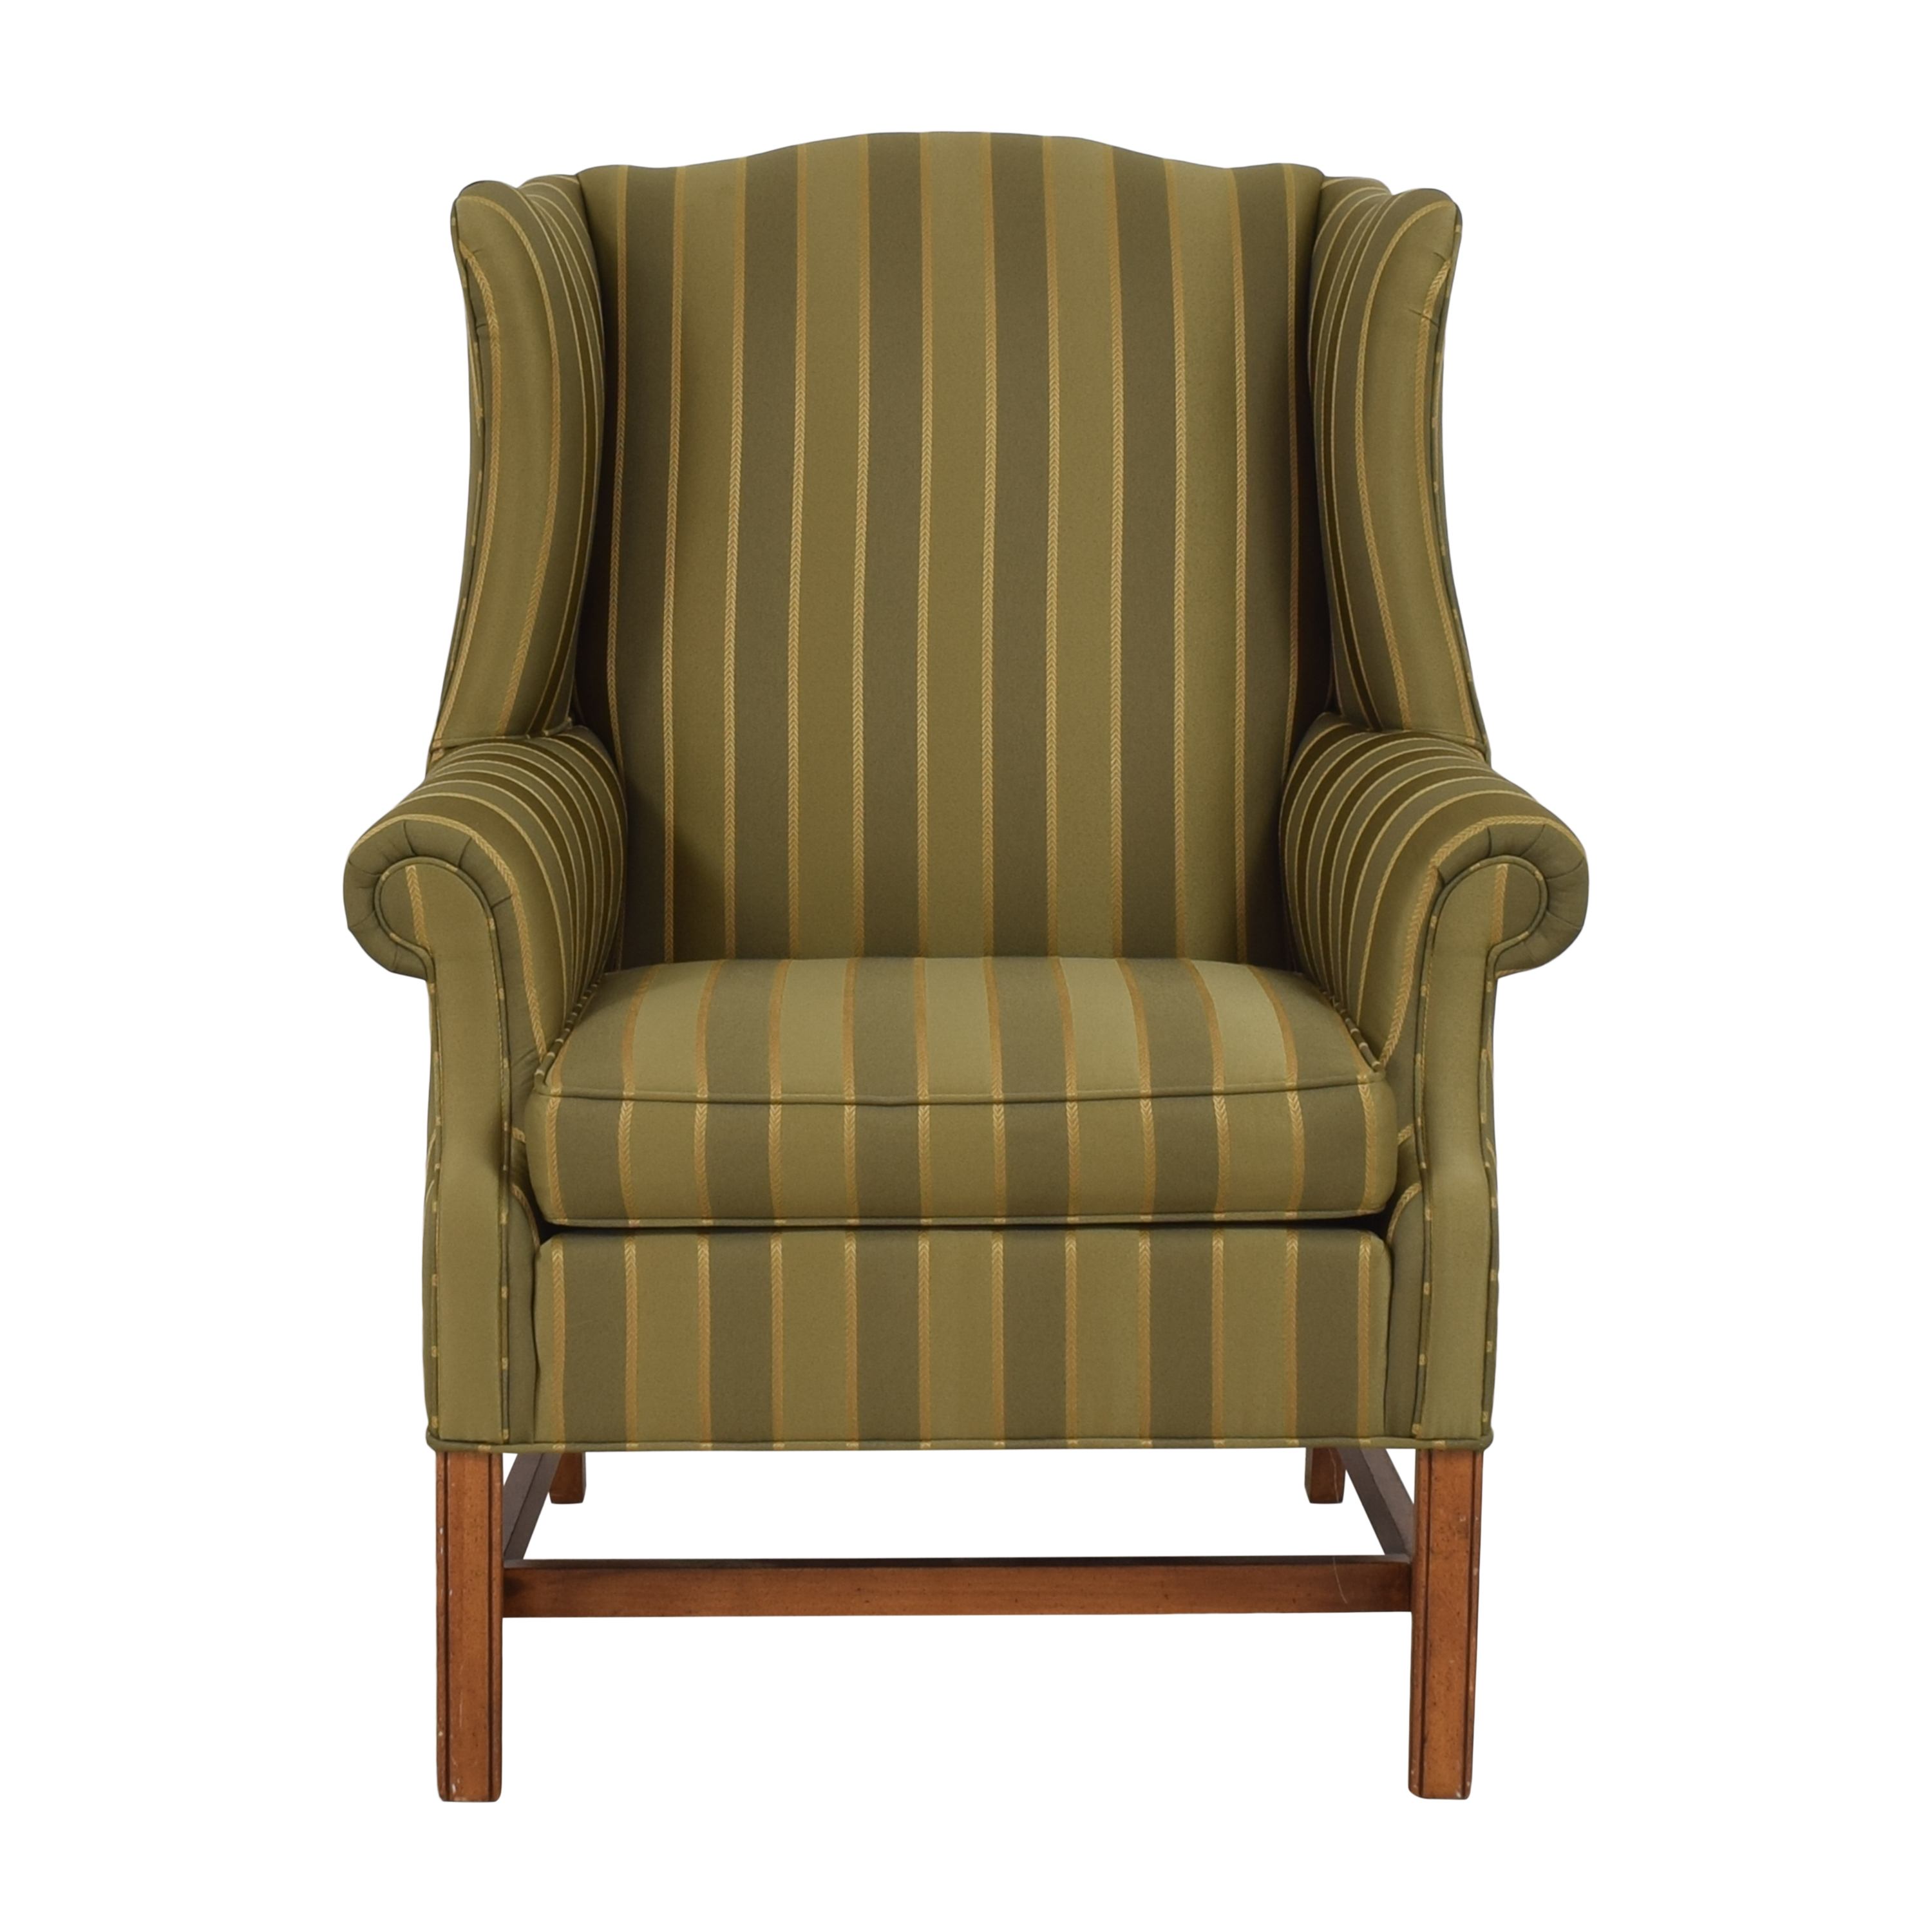 Ethan Allen Ethan Allen Traditional Classics Wingback Chair on sale